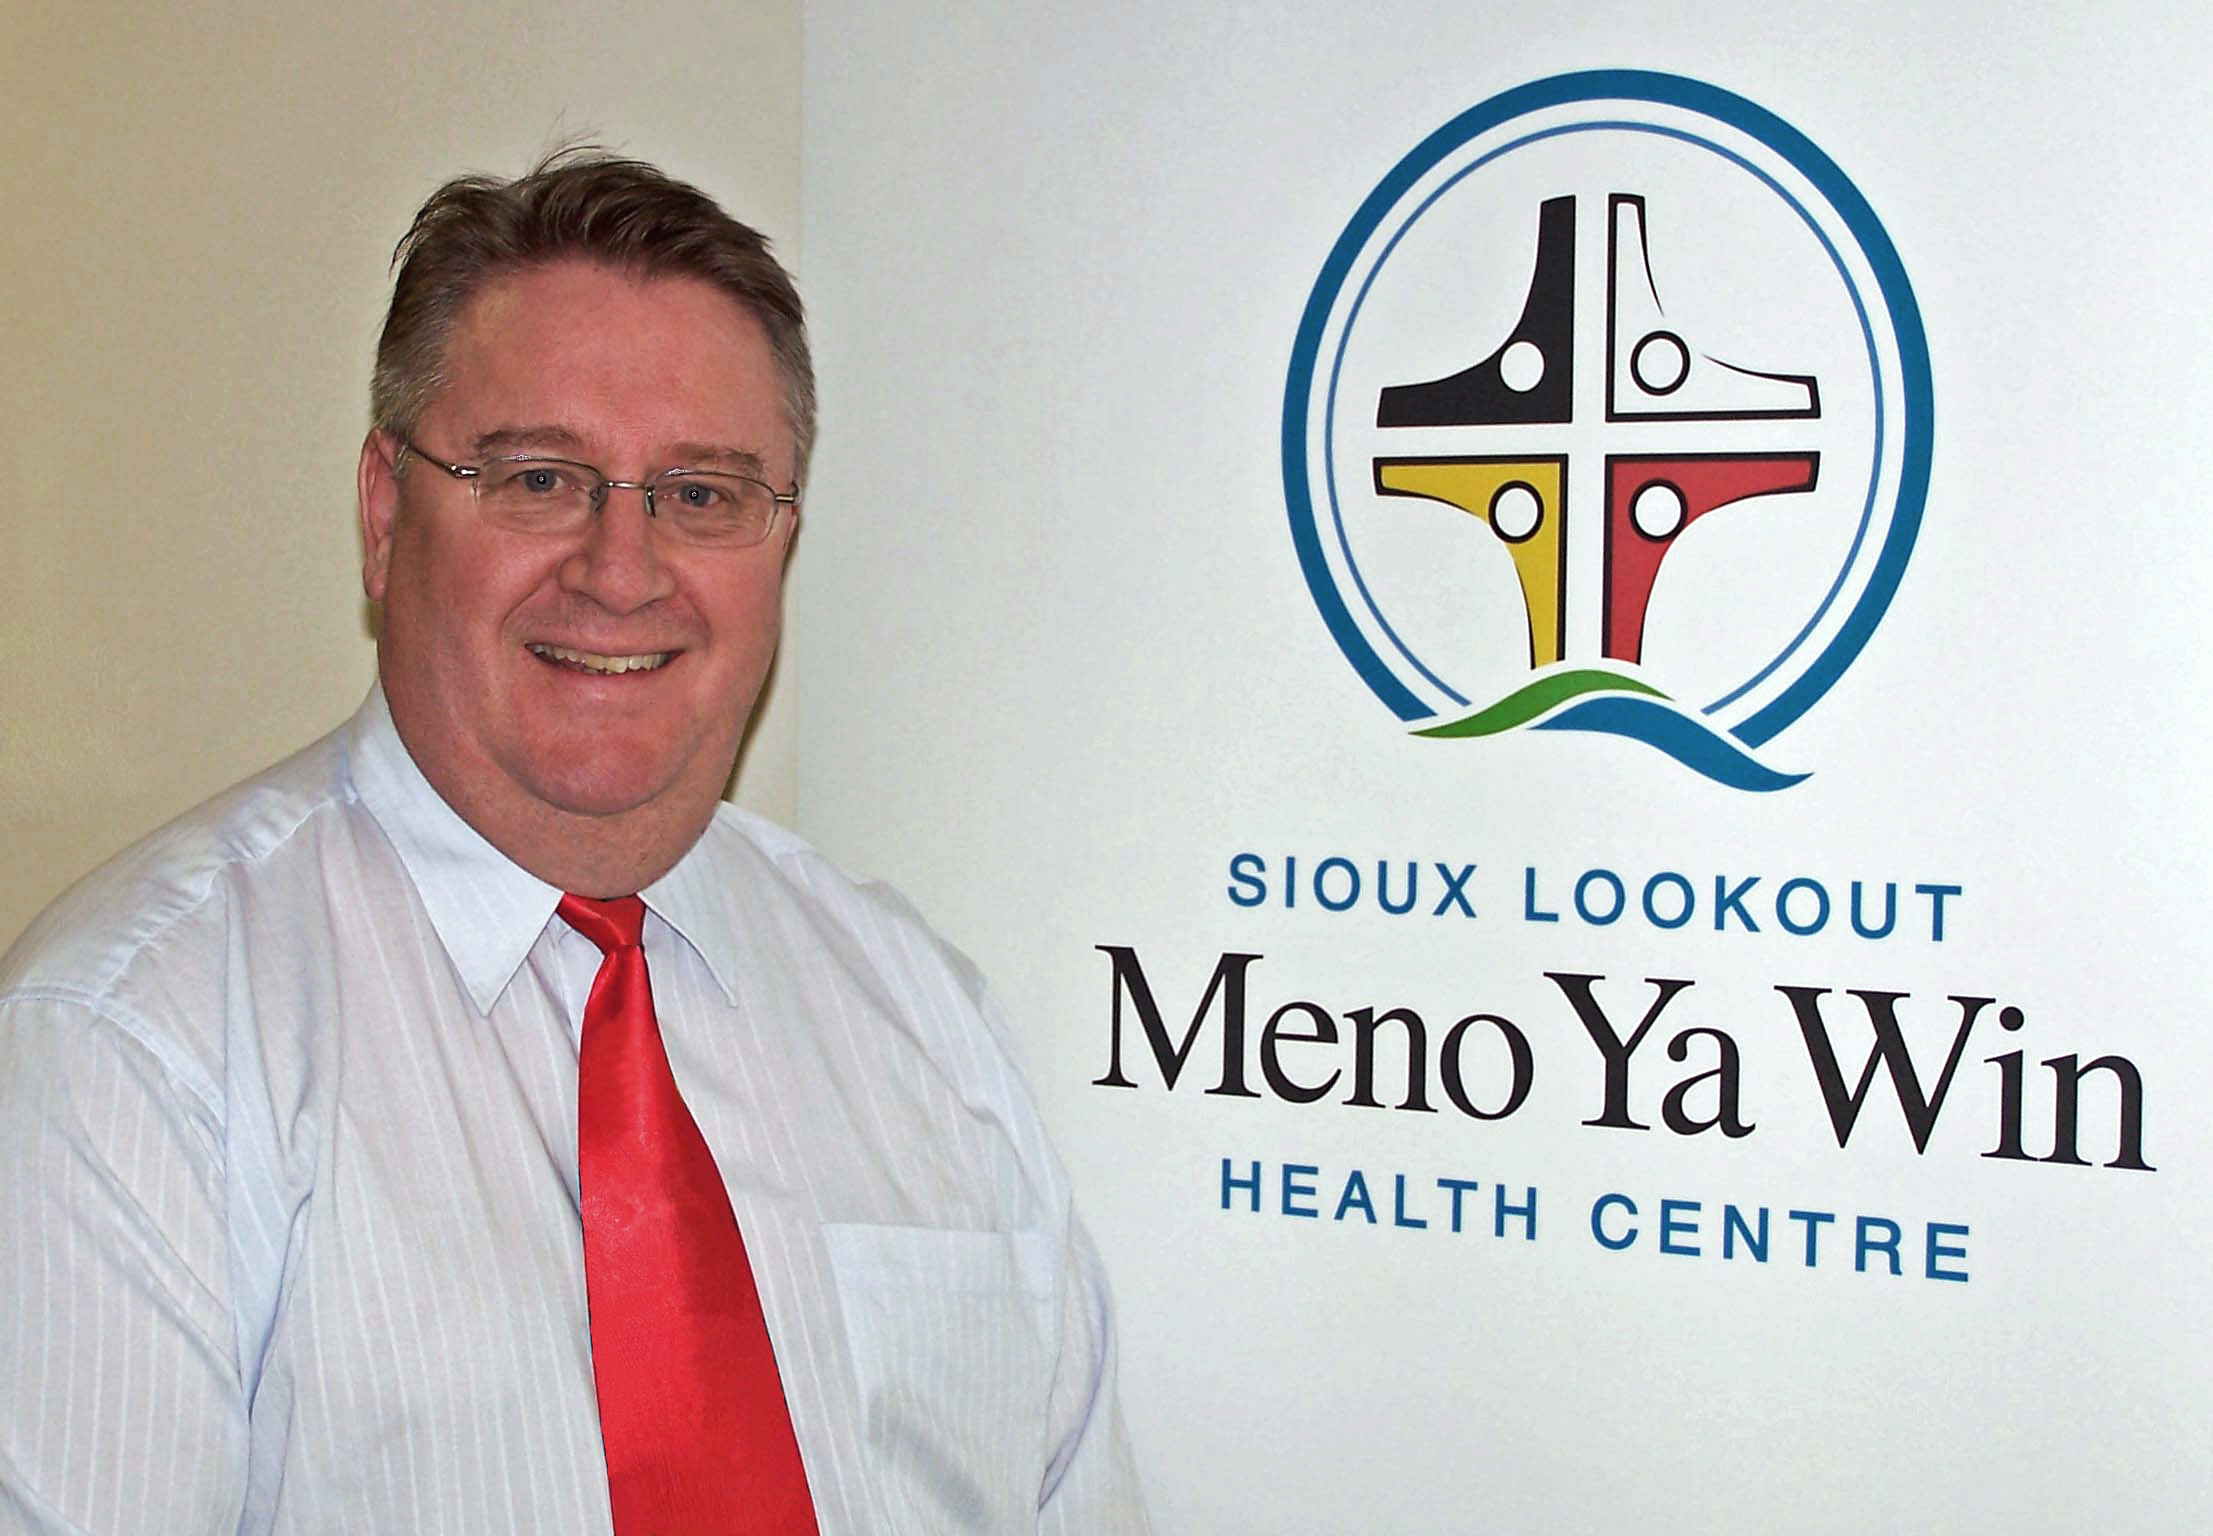 CEO David Murray takes on new role at the Northwest Health Alliance as Executive Director